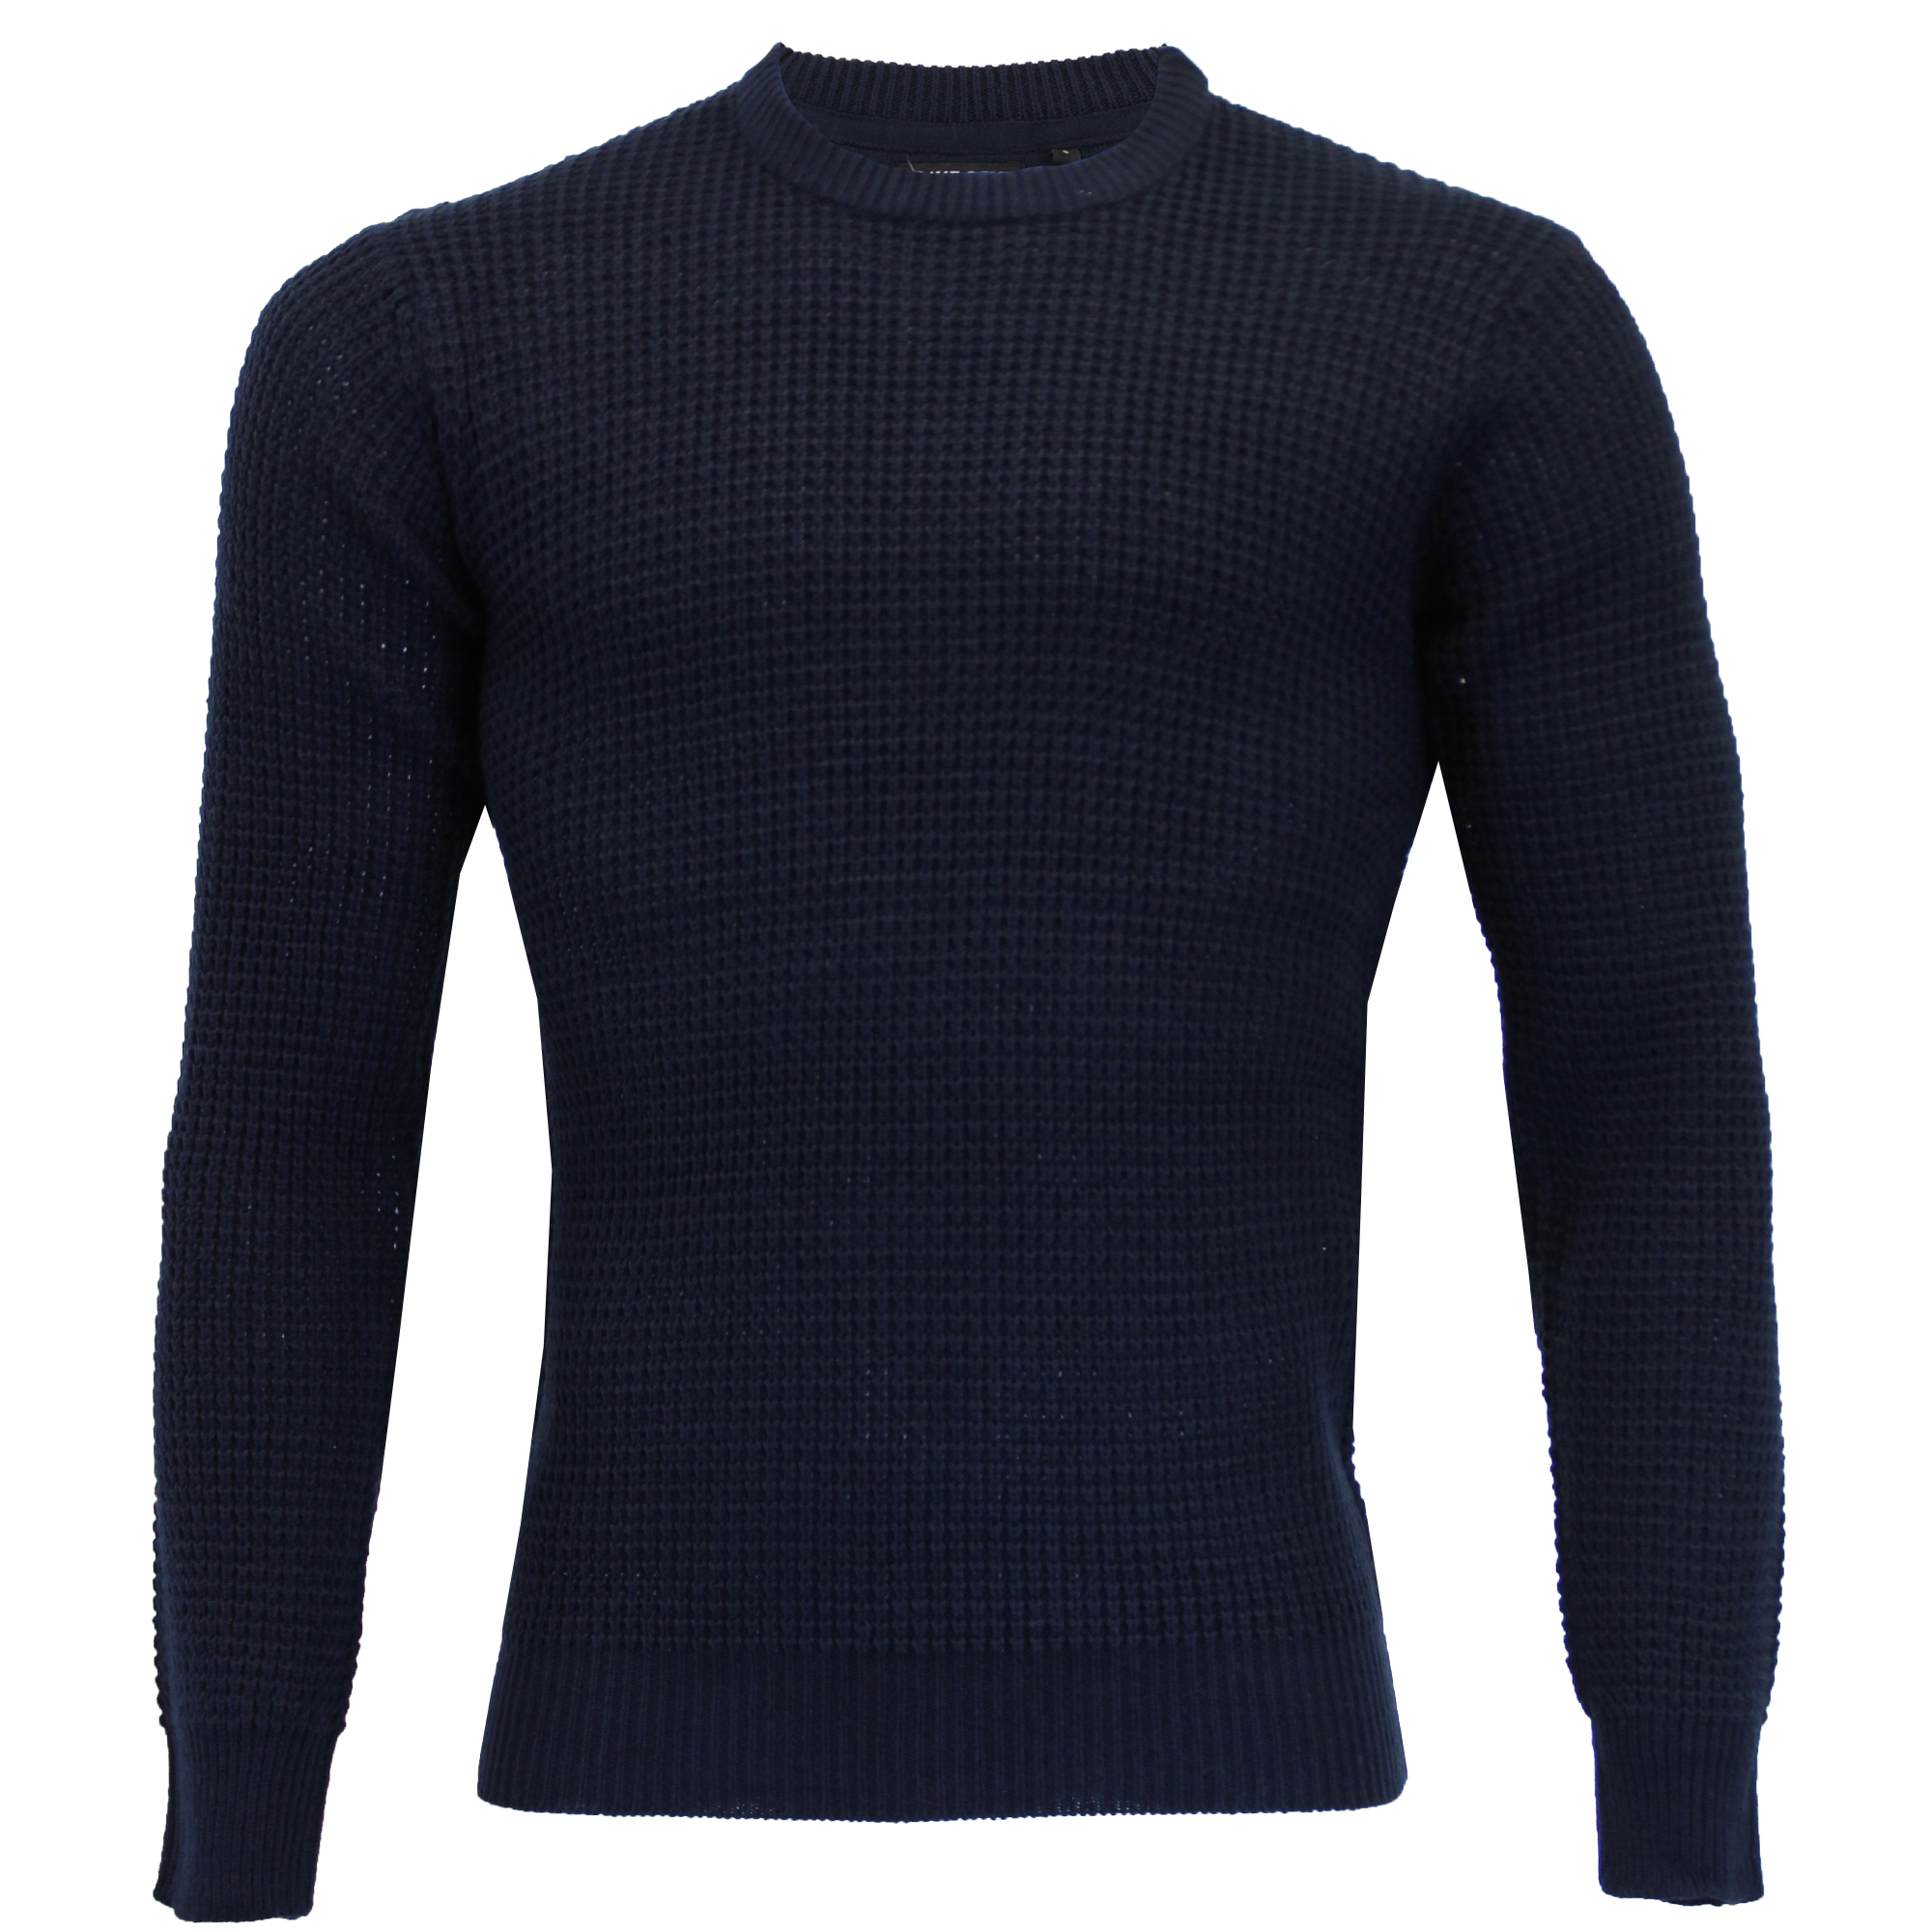 Mens Jumper Brave Soul Knitted Sweater Pullover Top Waffle Crew Neck SLOVAK New